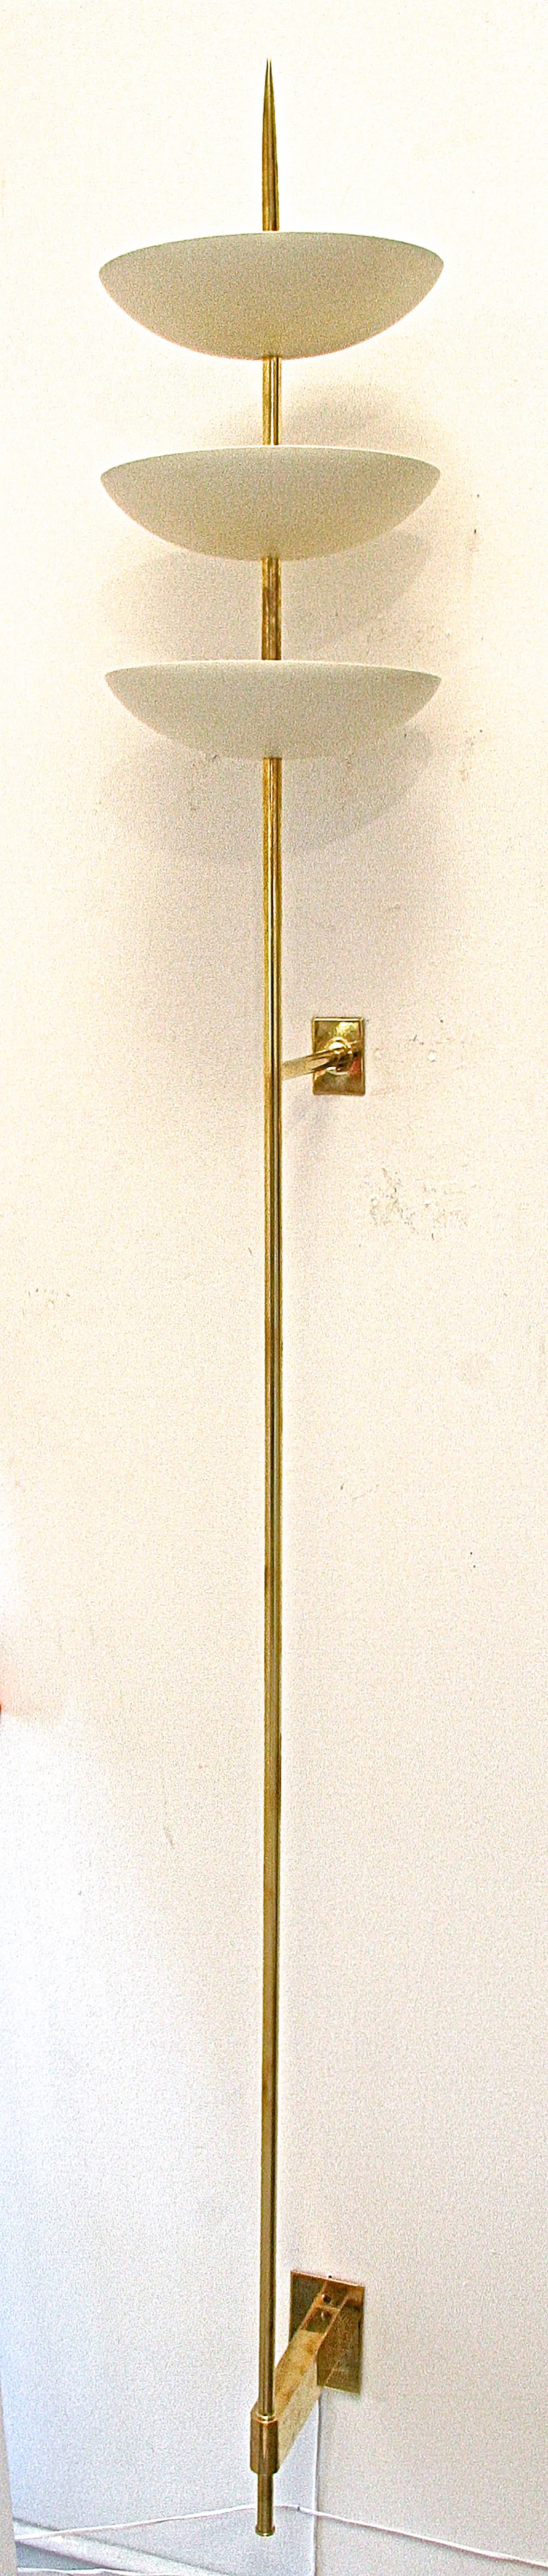 Tall Metal Wall Sconces : Large Brass and White Metal Bowl Wall Sconces in the Style of Stilnovo at 1stdibs